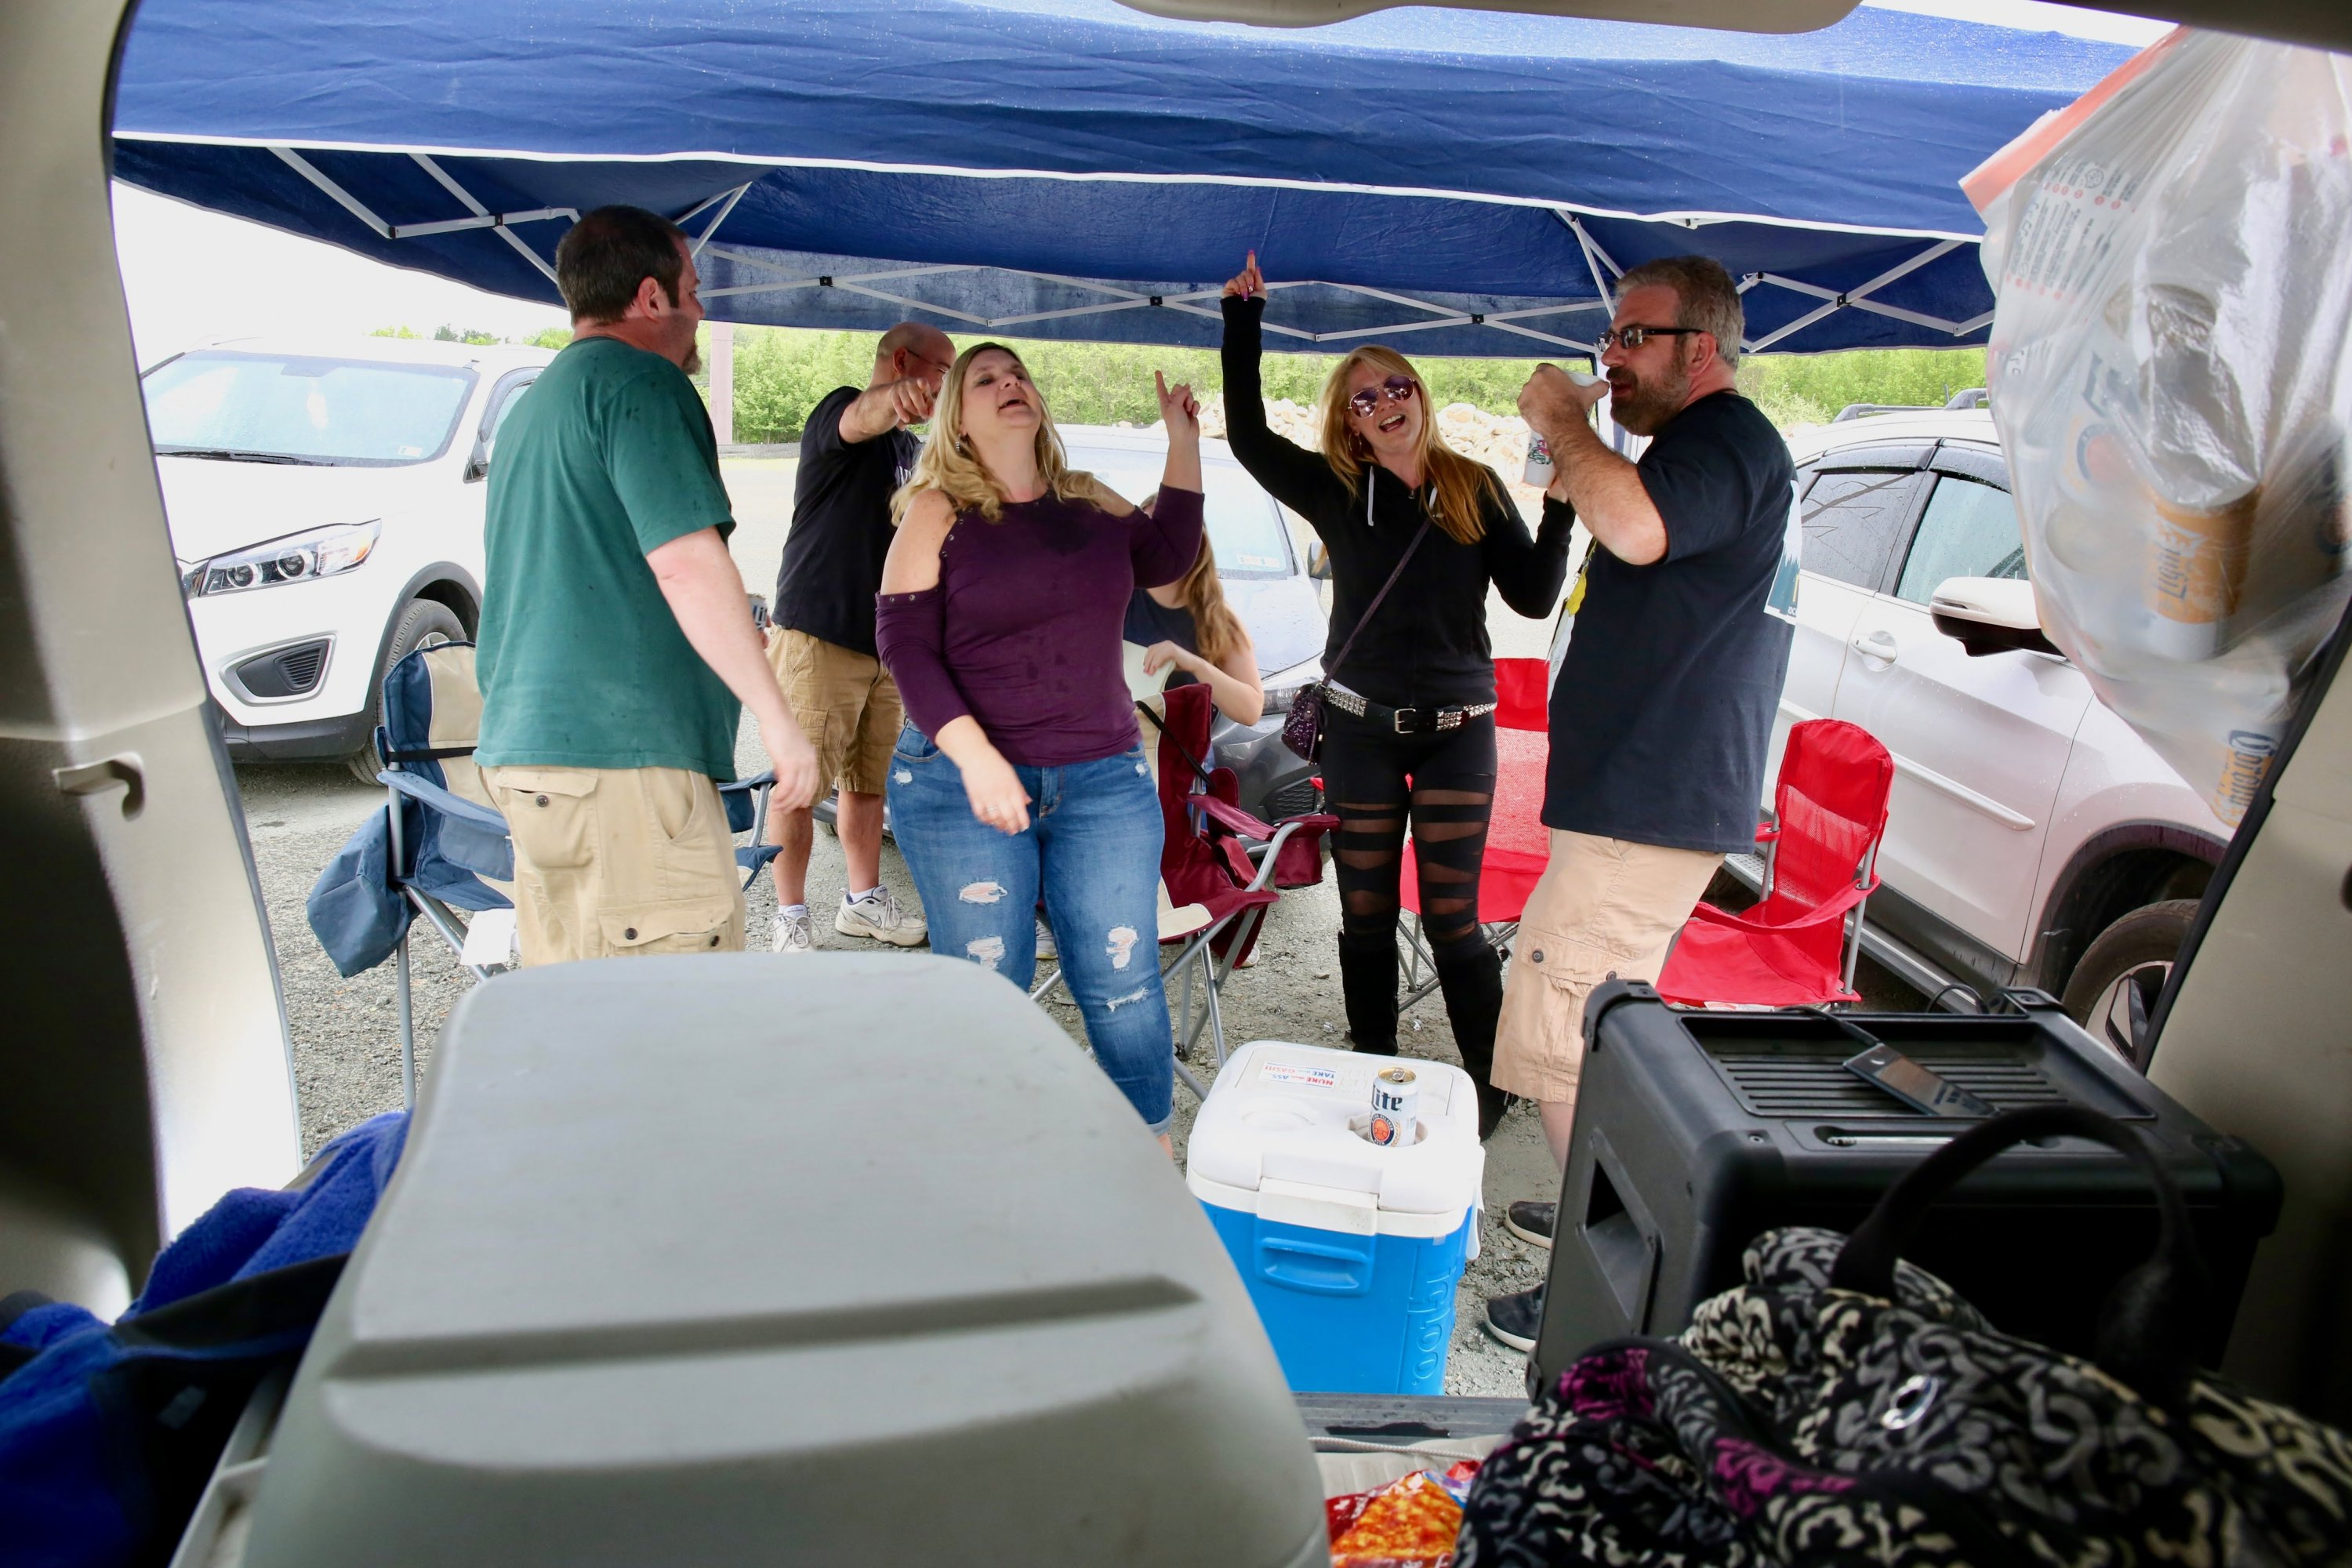 Rick, Michelle, Colleen, and Jeff pump themselves up before the show.